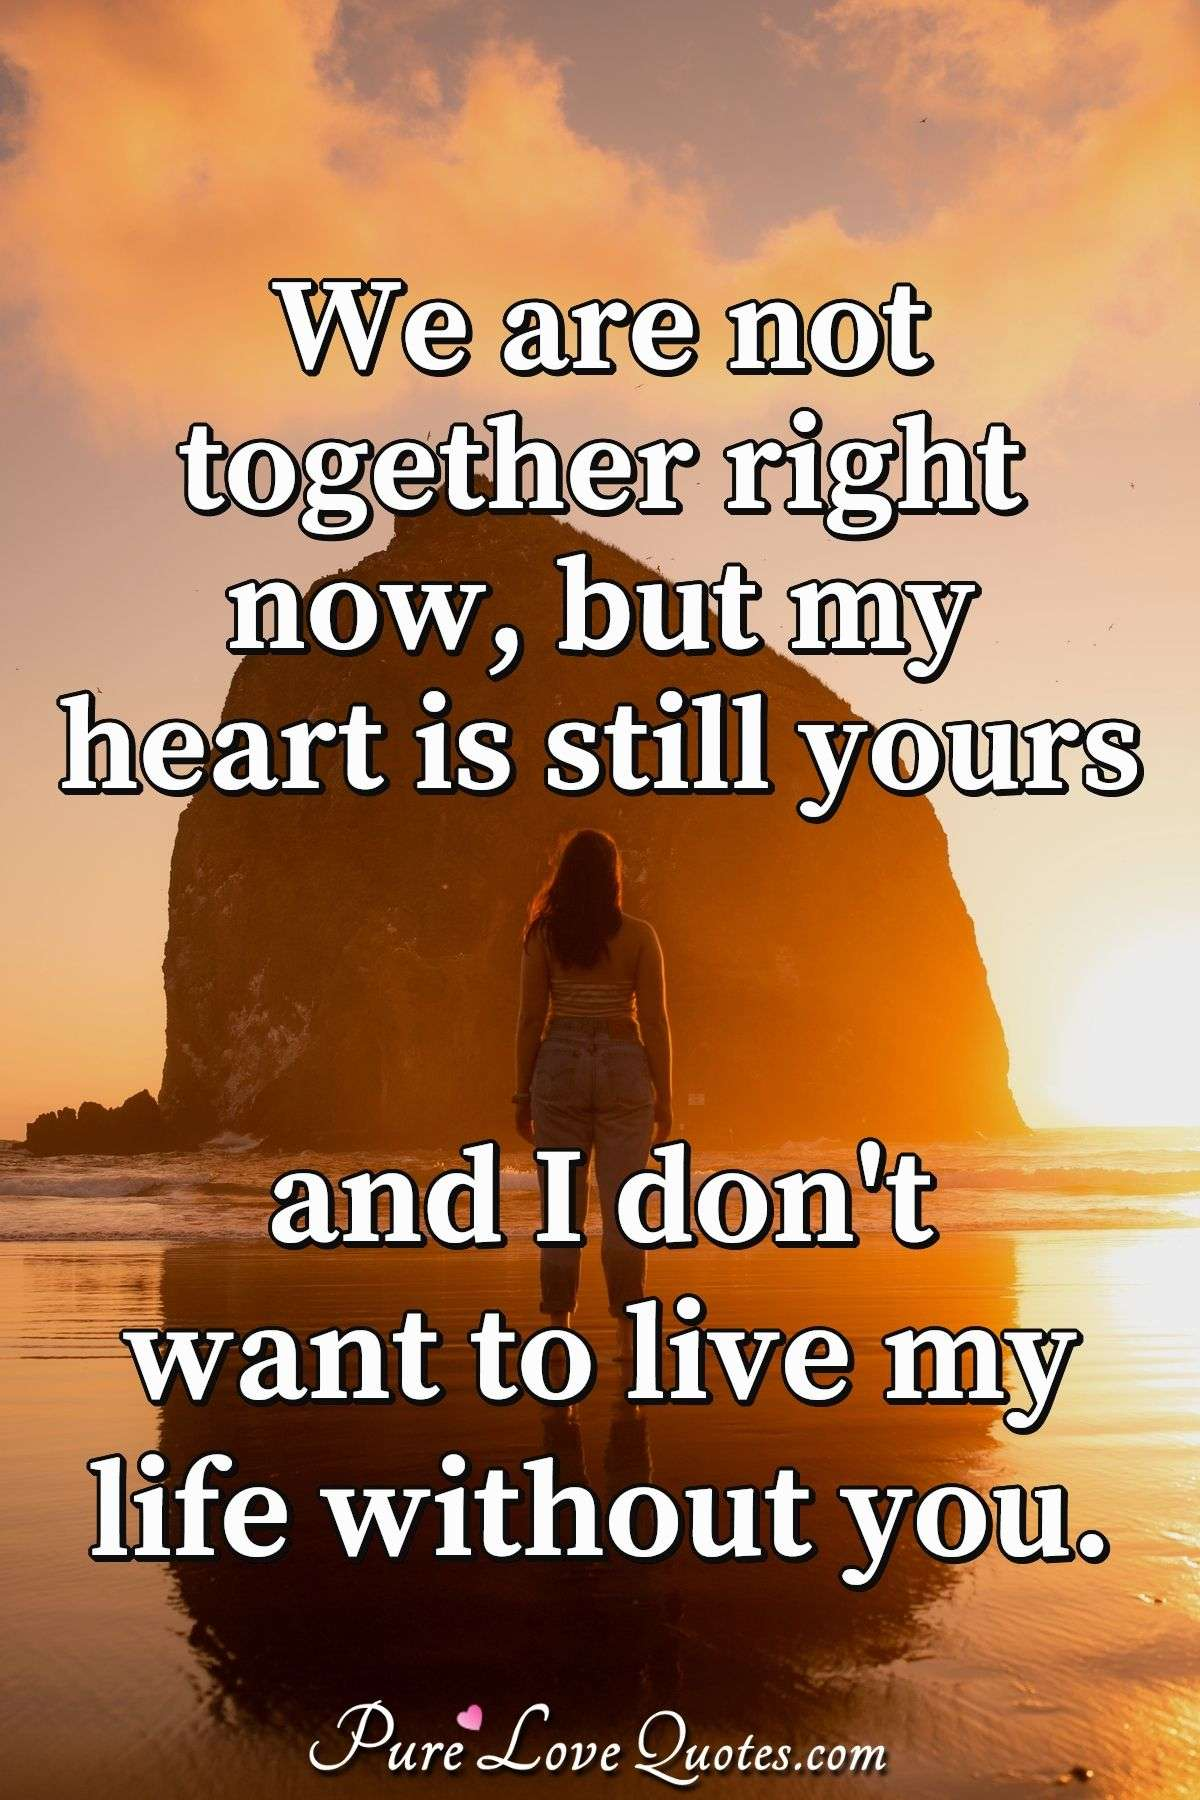 We are not together right now, but my heart is still yours and I don't want to live my life without you. - Anonymous